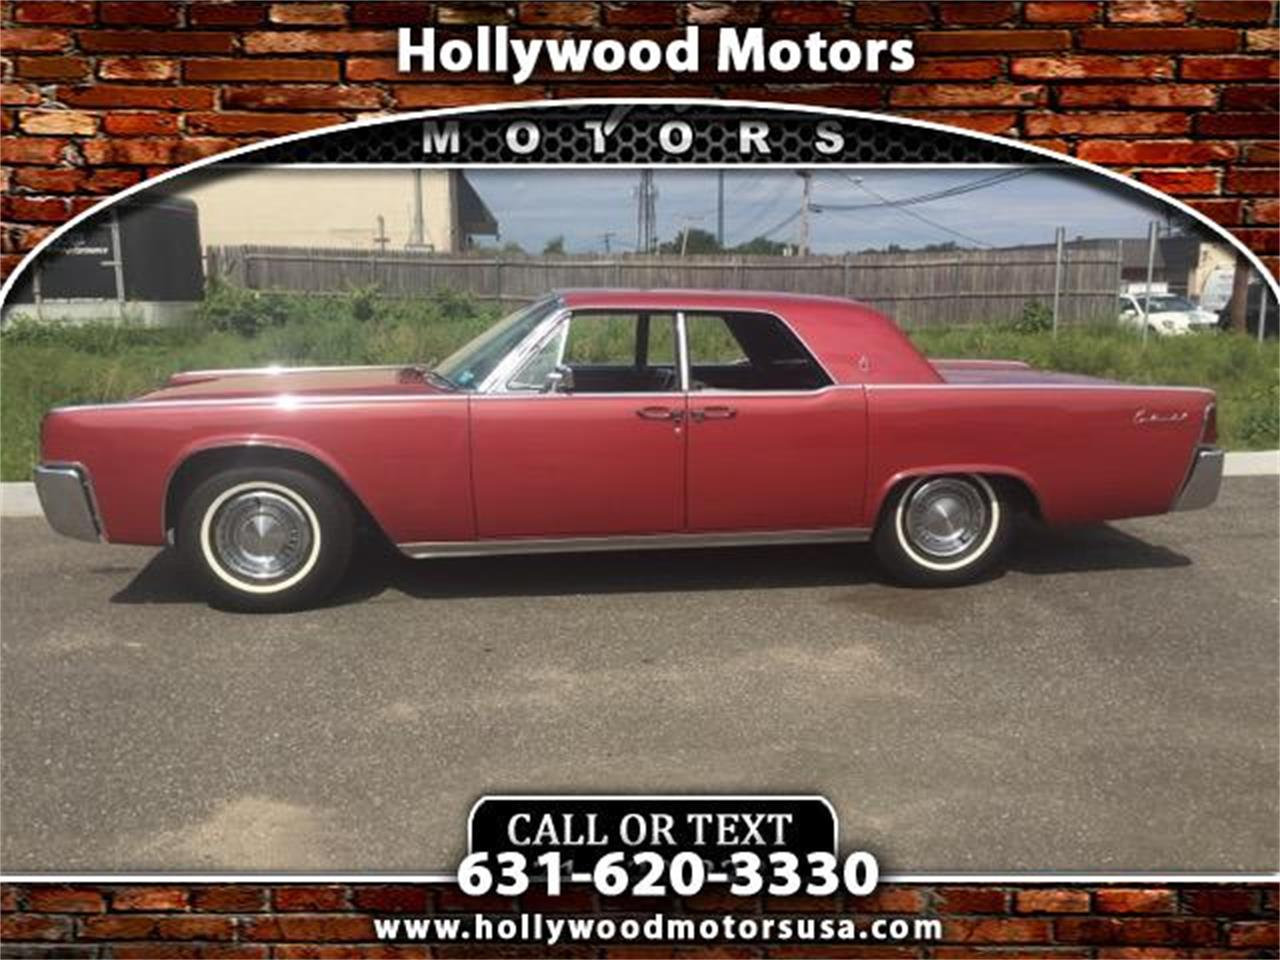 1963 lincoln continental for sale cc for Hollywood motors west babylon